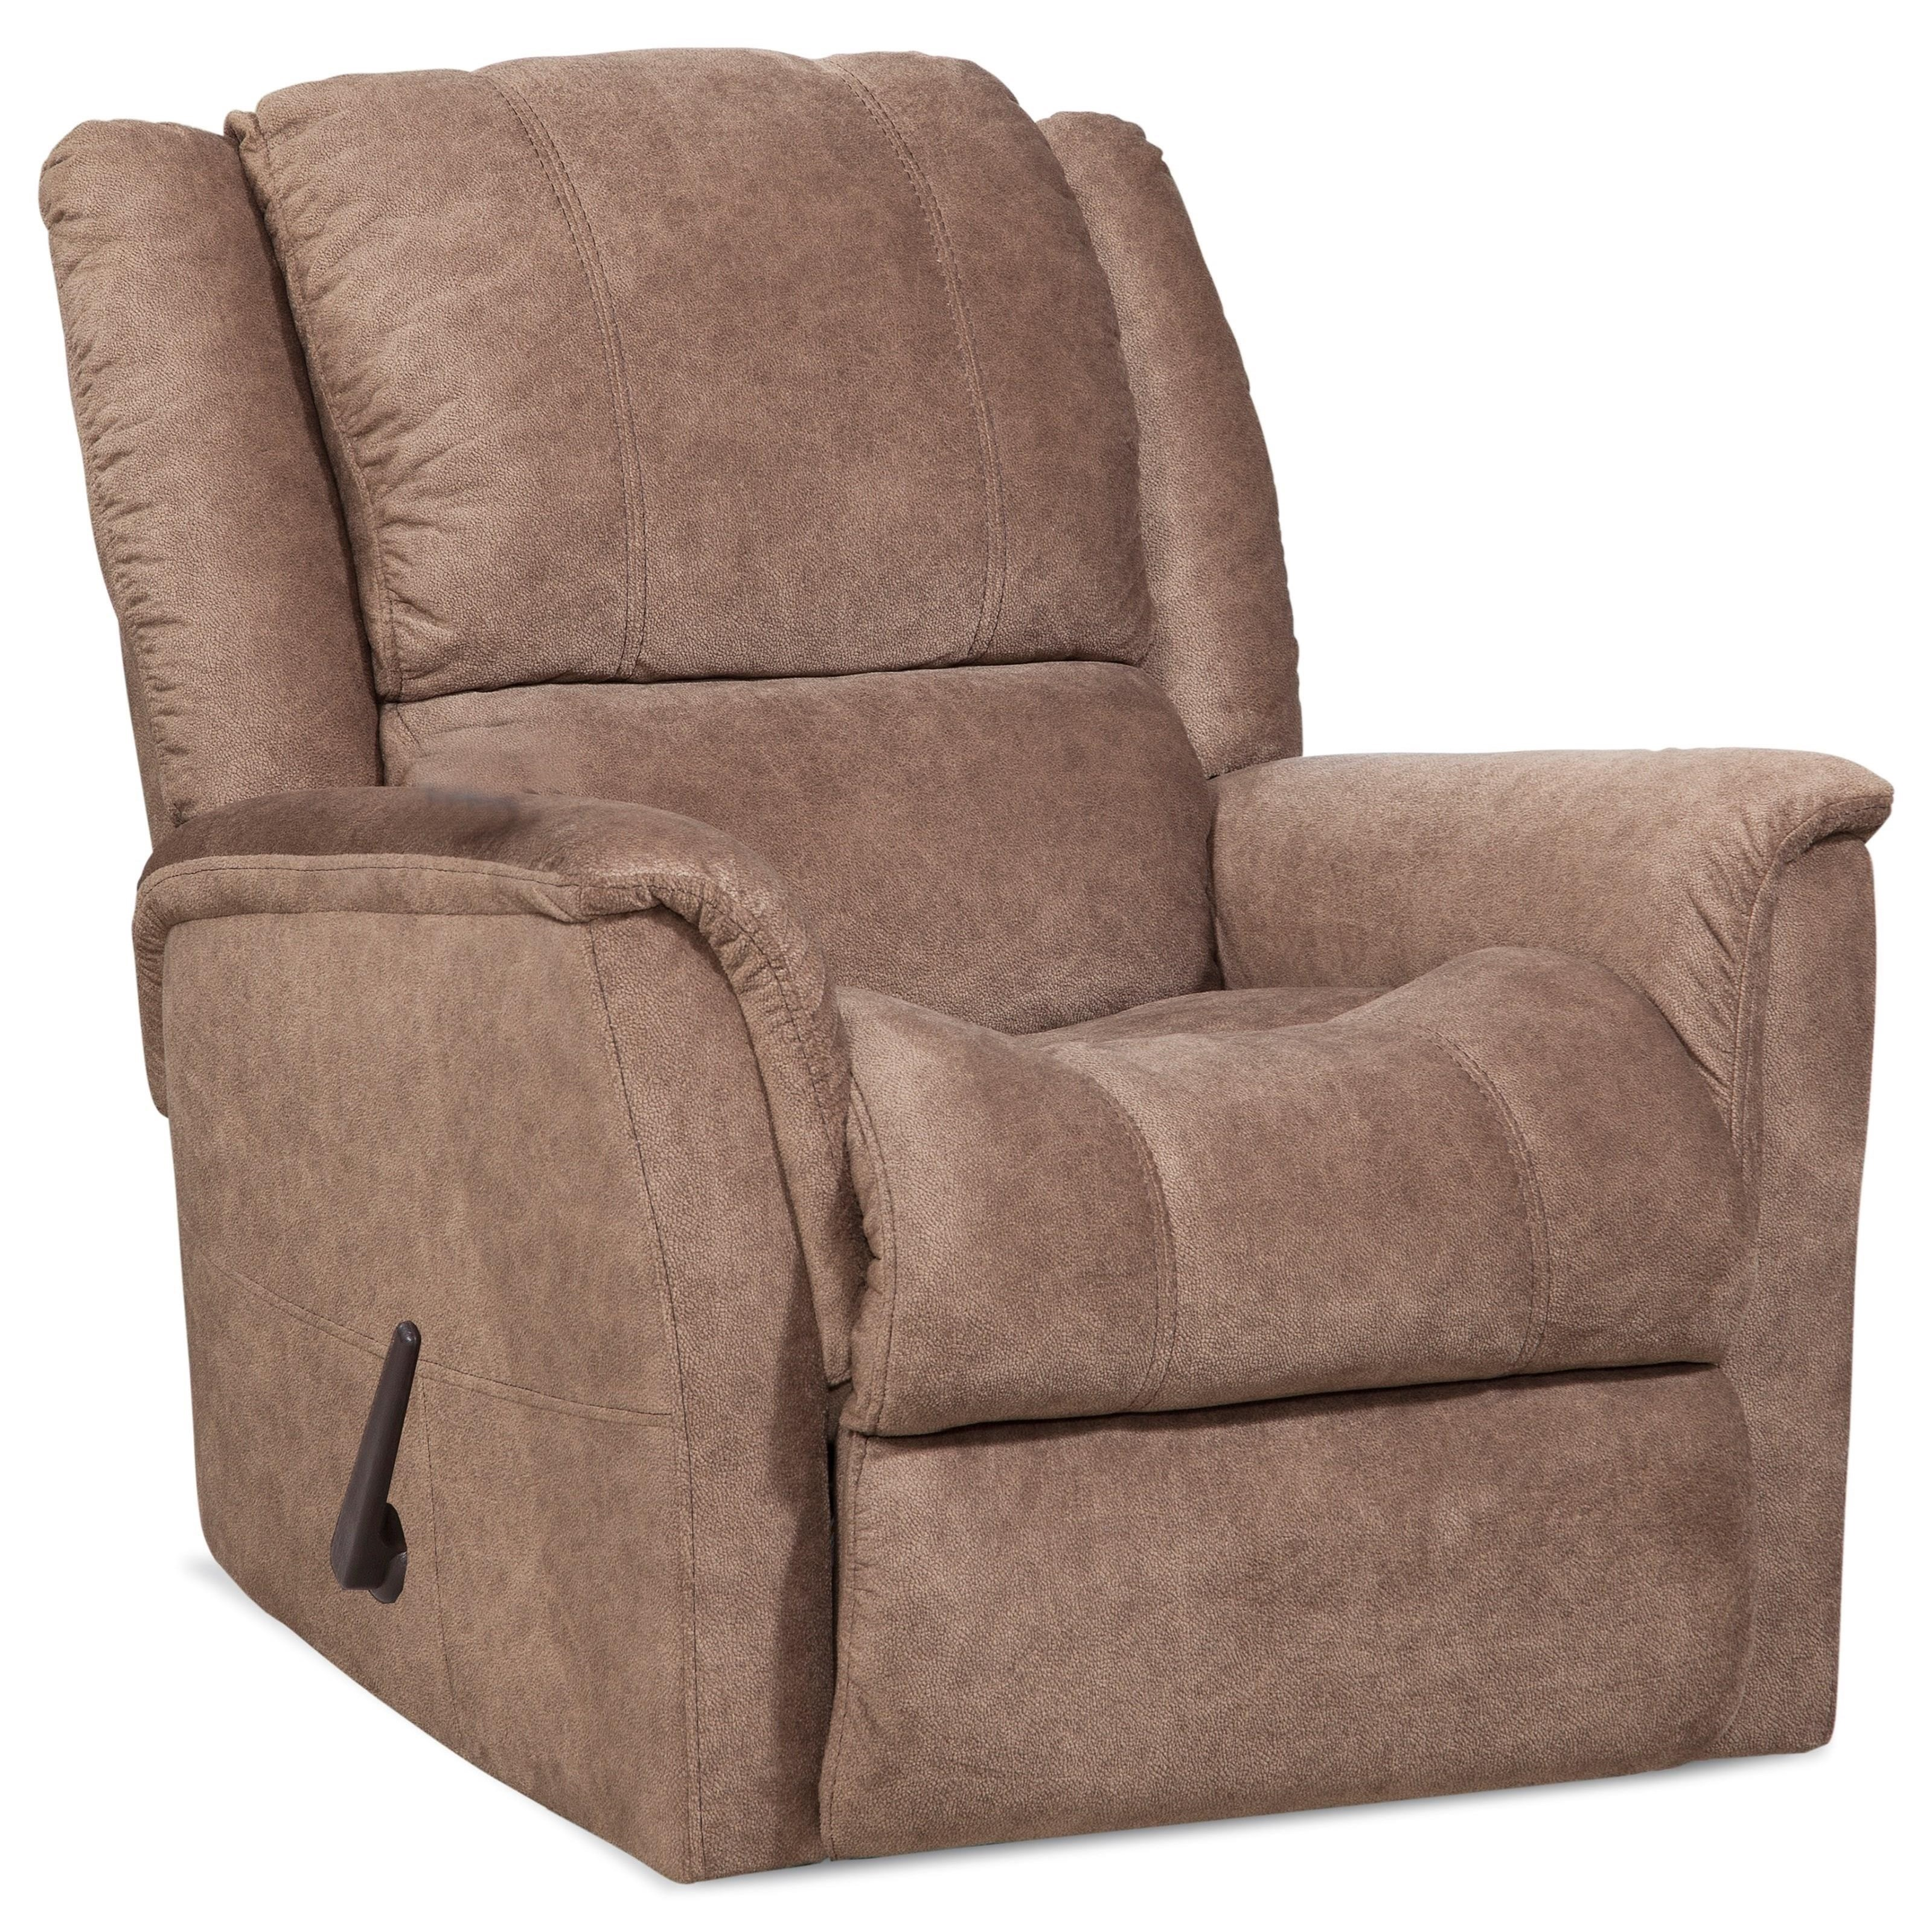 172 Casual Rocker Recliner by HomeStretch at Suburban Furniture